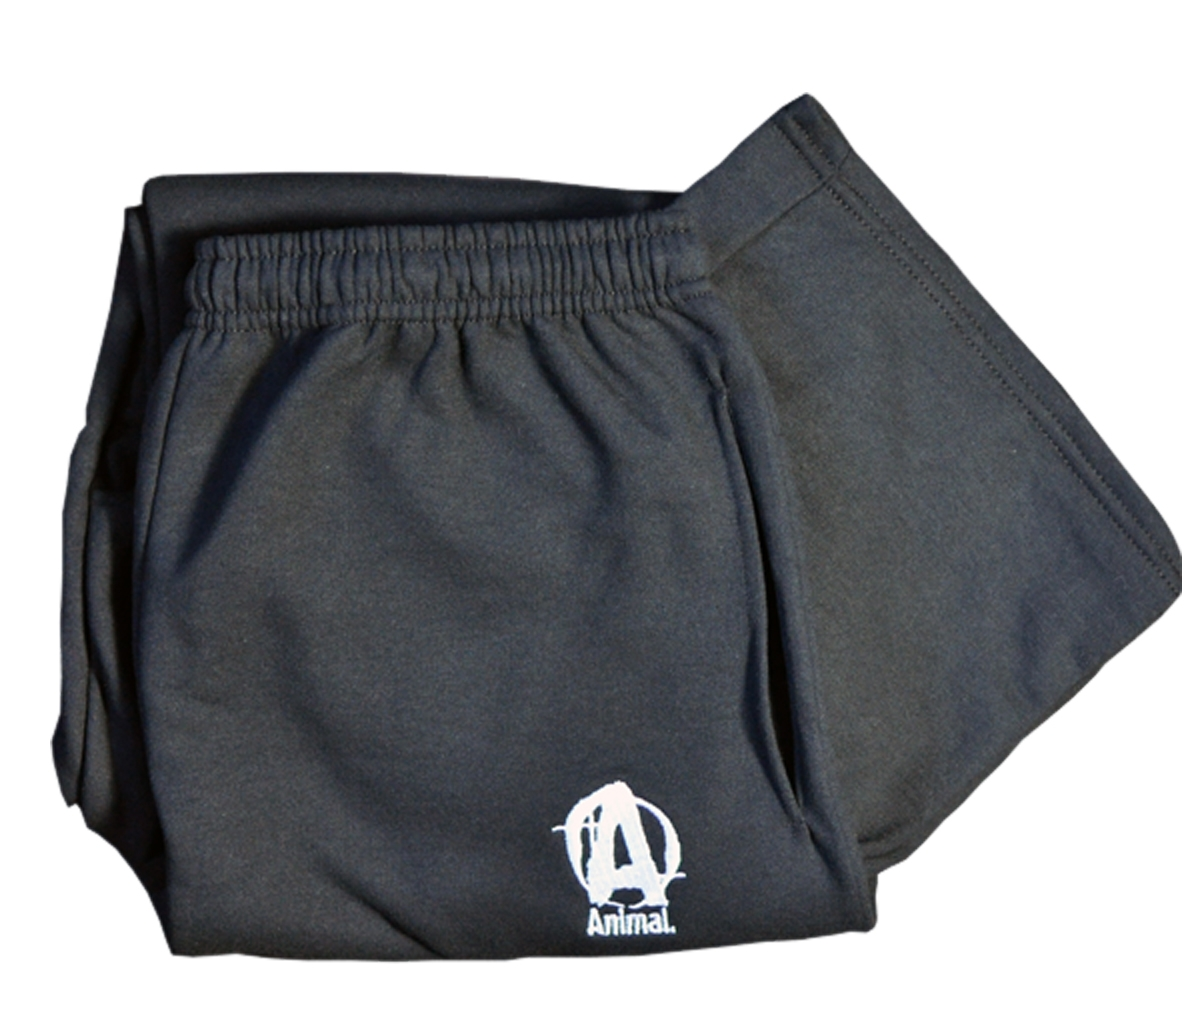 Animal Sweatpants By Universal Nutrition, XX-Large